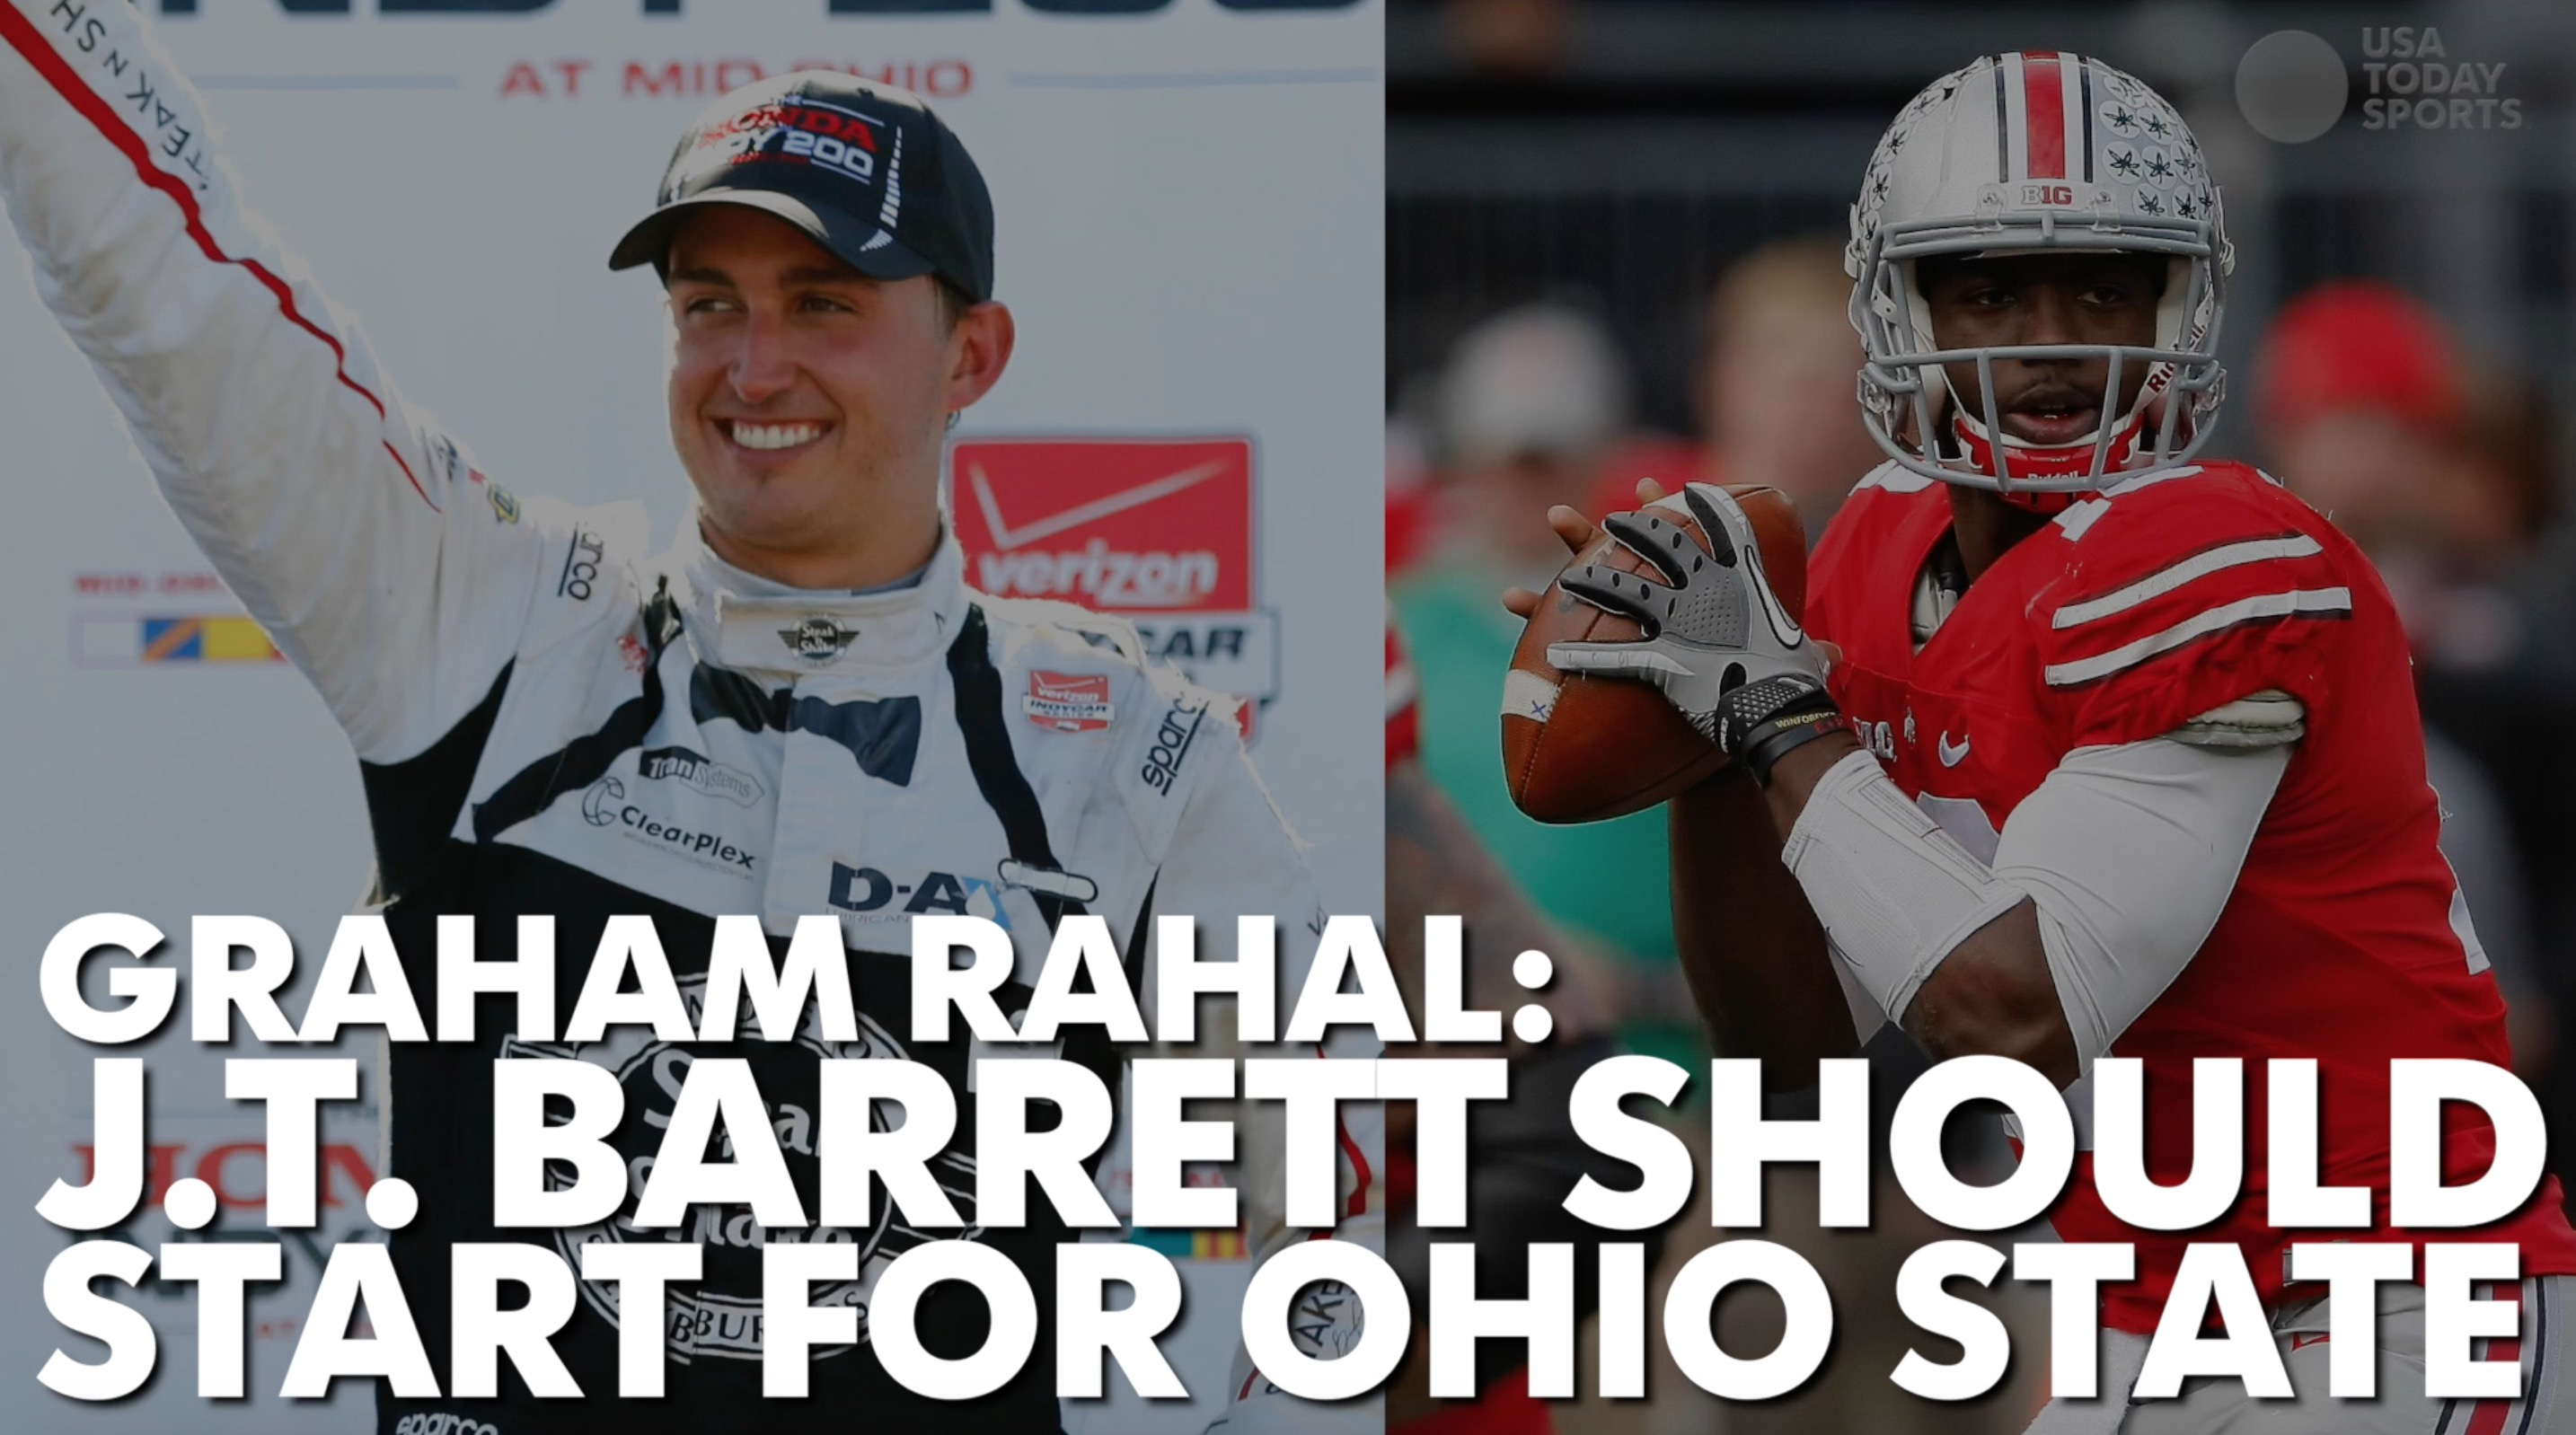 Graham Rahal: J.T. Barrett should start for Ohio State